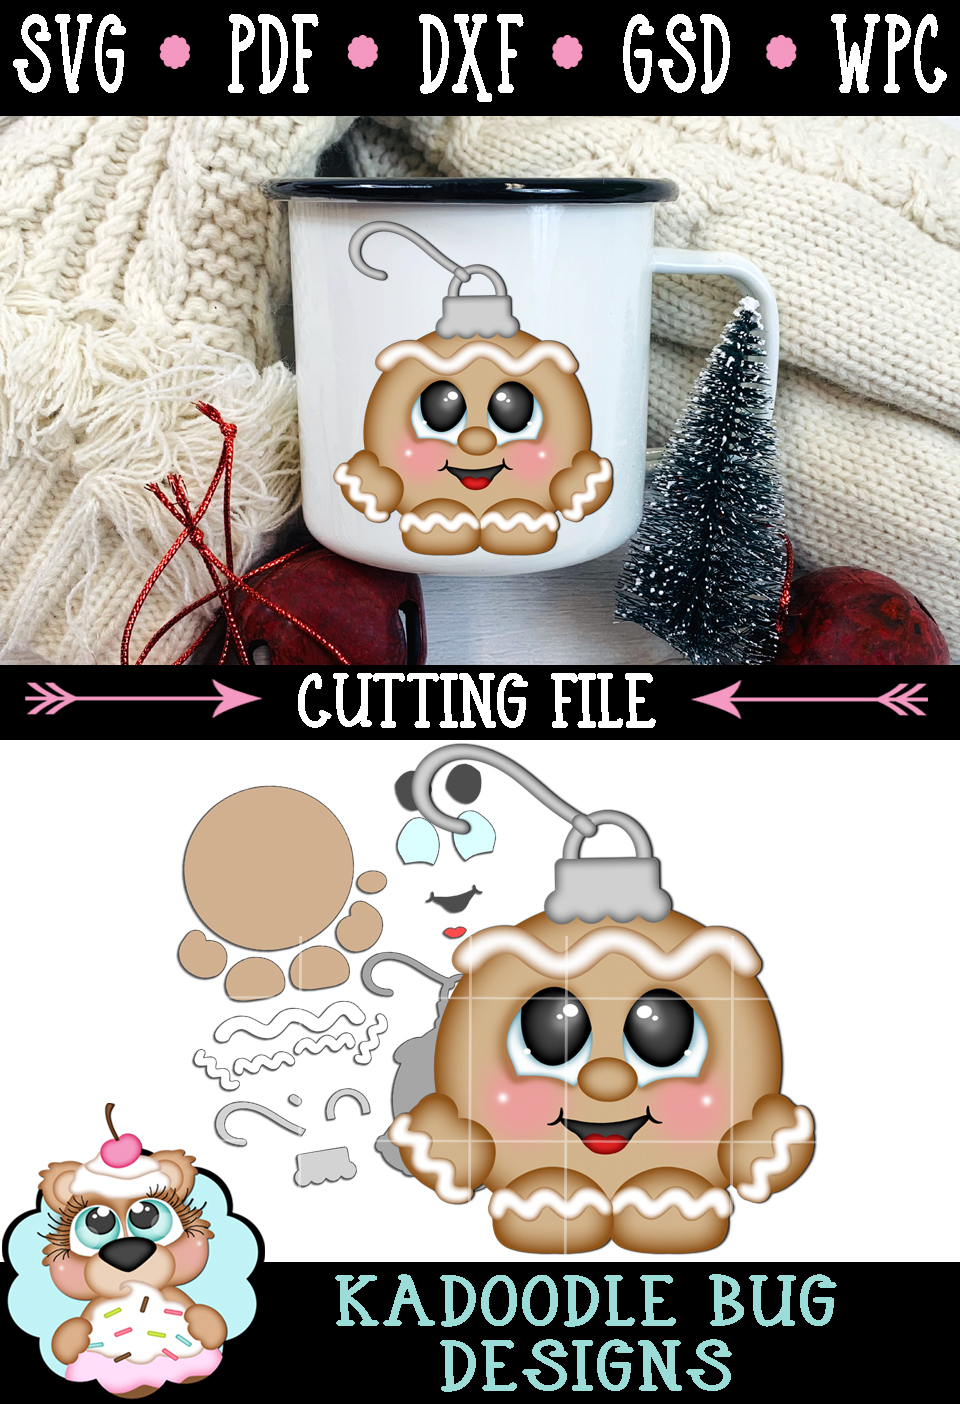 Ginger Boy Ornament Cutie Cut File - SVG PDF DXF GSD WPC example image 2